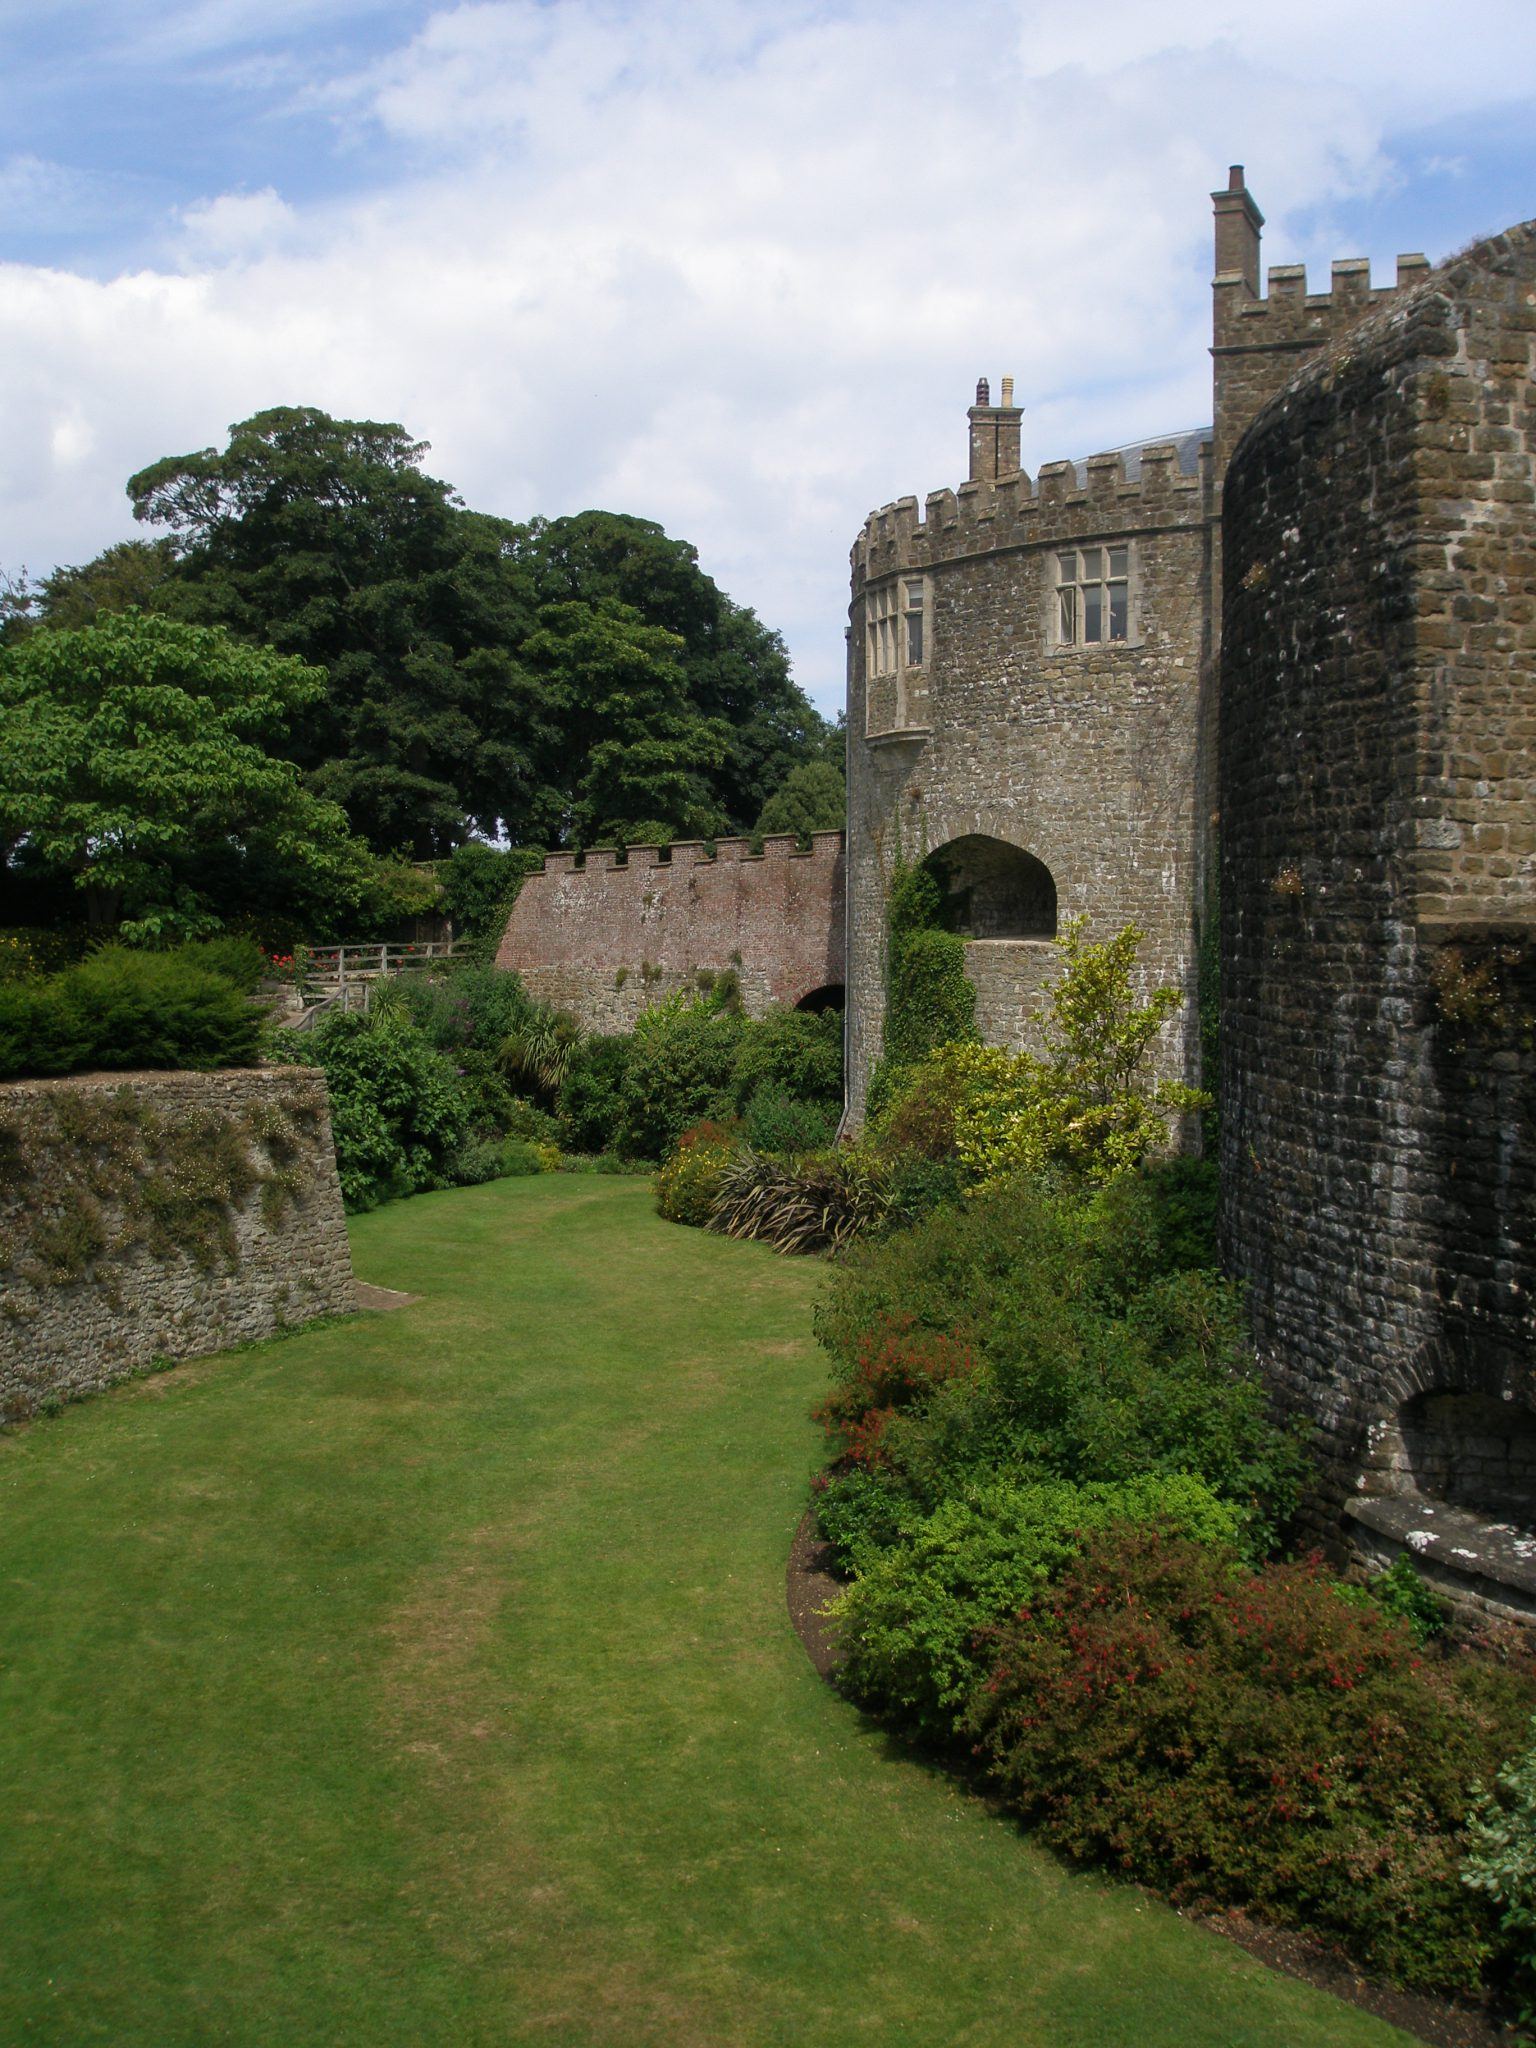 And we took one, last look at the sunken Moat Garden. The sheltered conditions in the Moat allow tender plants and fruit trees (which could not normally survive the harsh, salty, seaside conditions) to flourish.